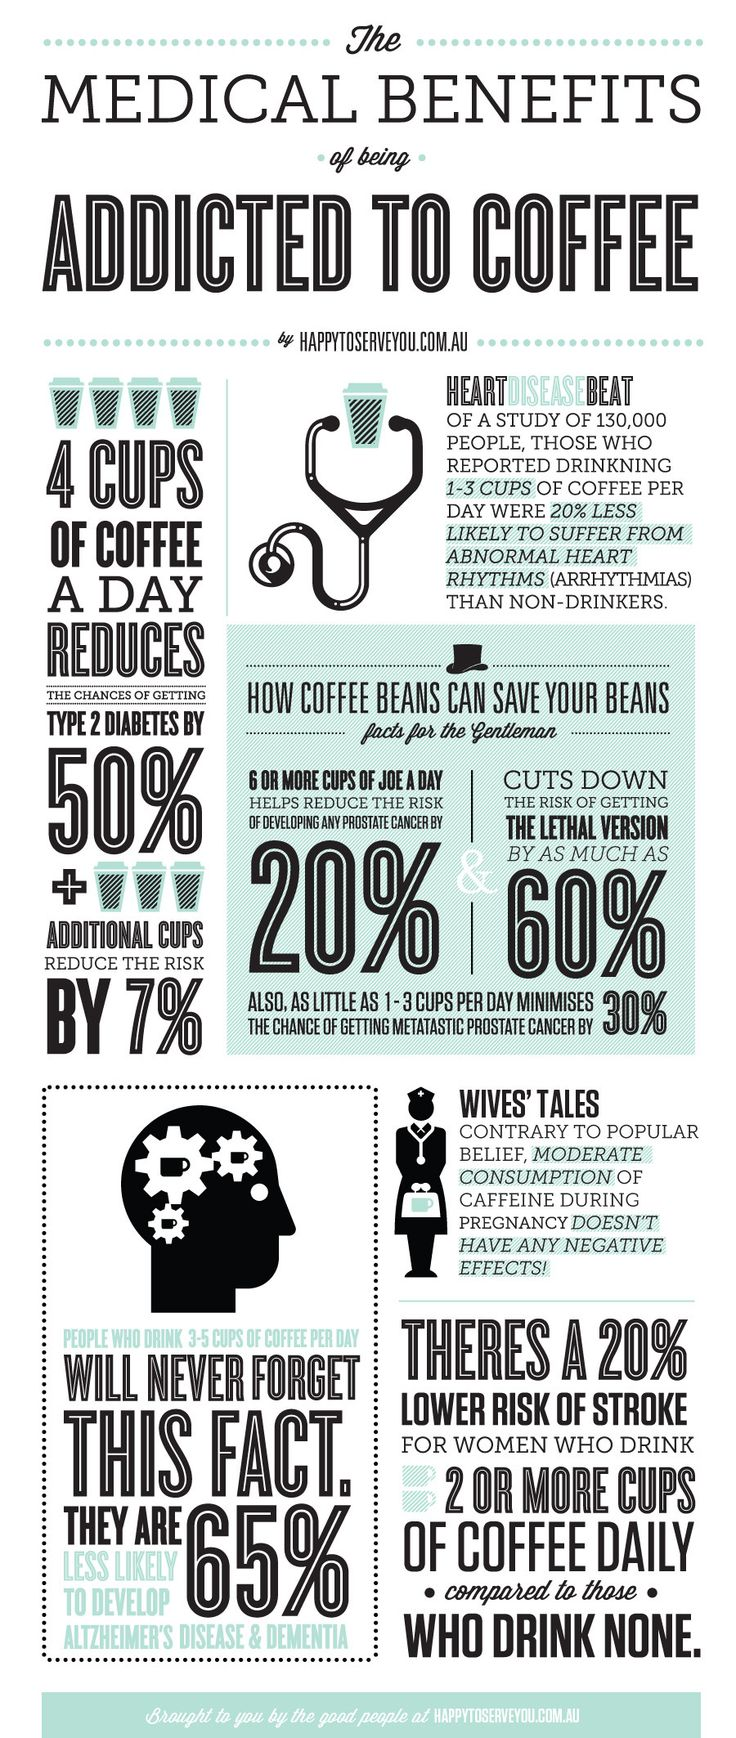 Medical benefits of being addicted to coffee !!  My kind of article !!